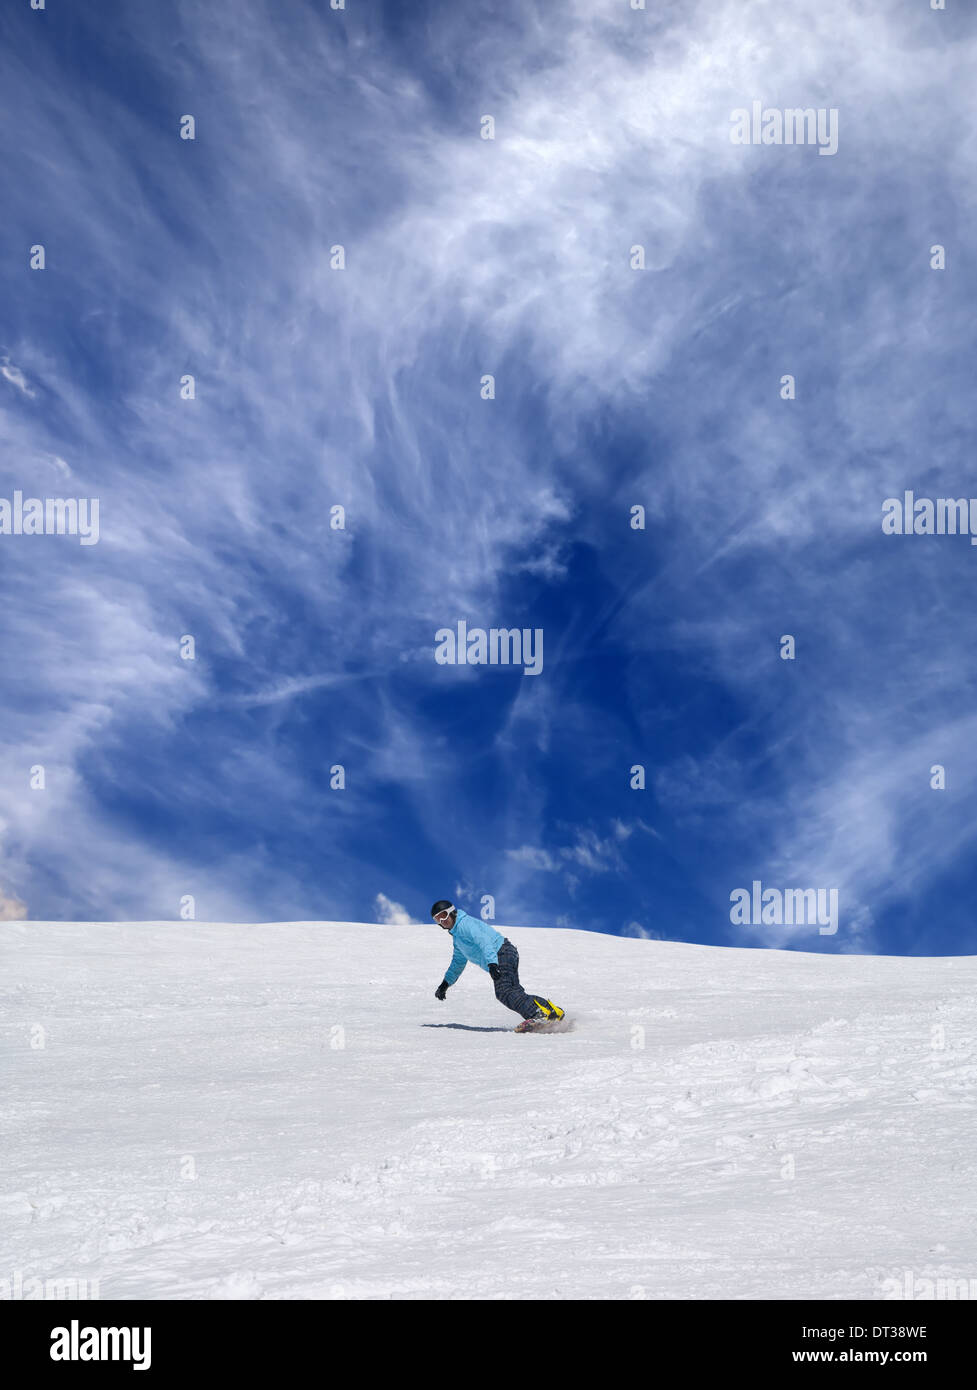 Snowboarder on off-piste ski slope and blue sky with clouds - Stock Image